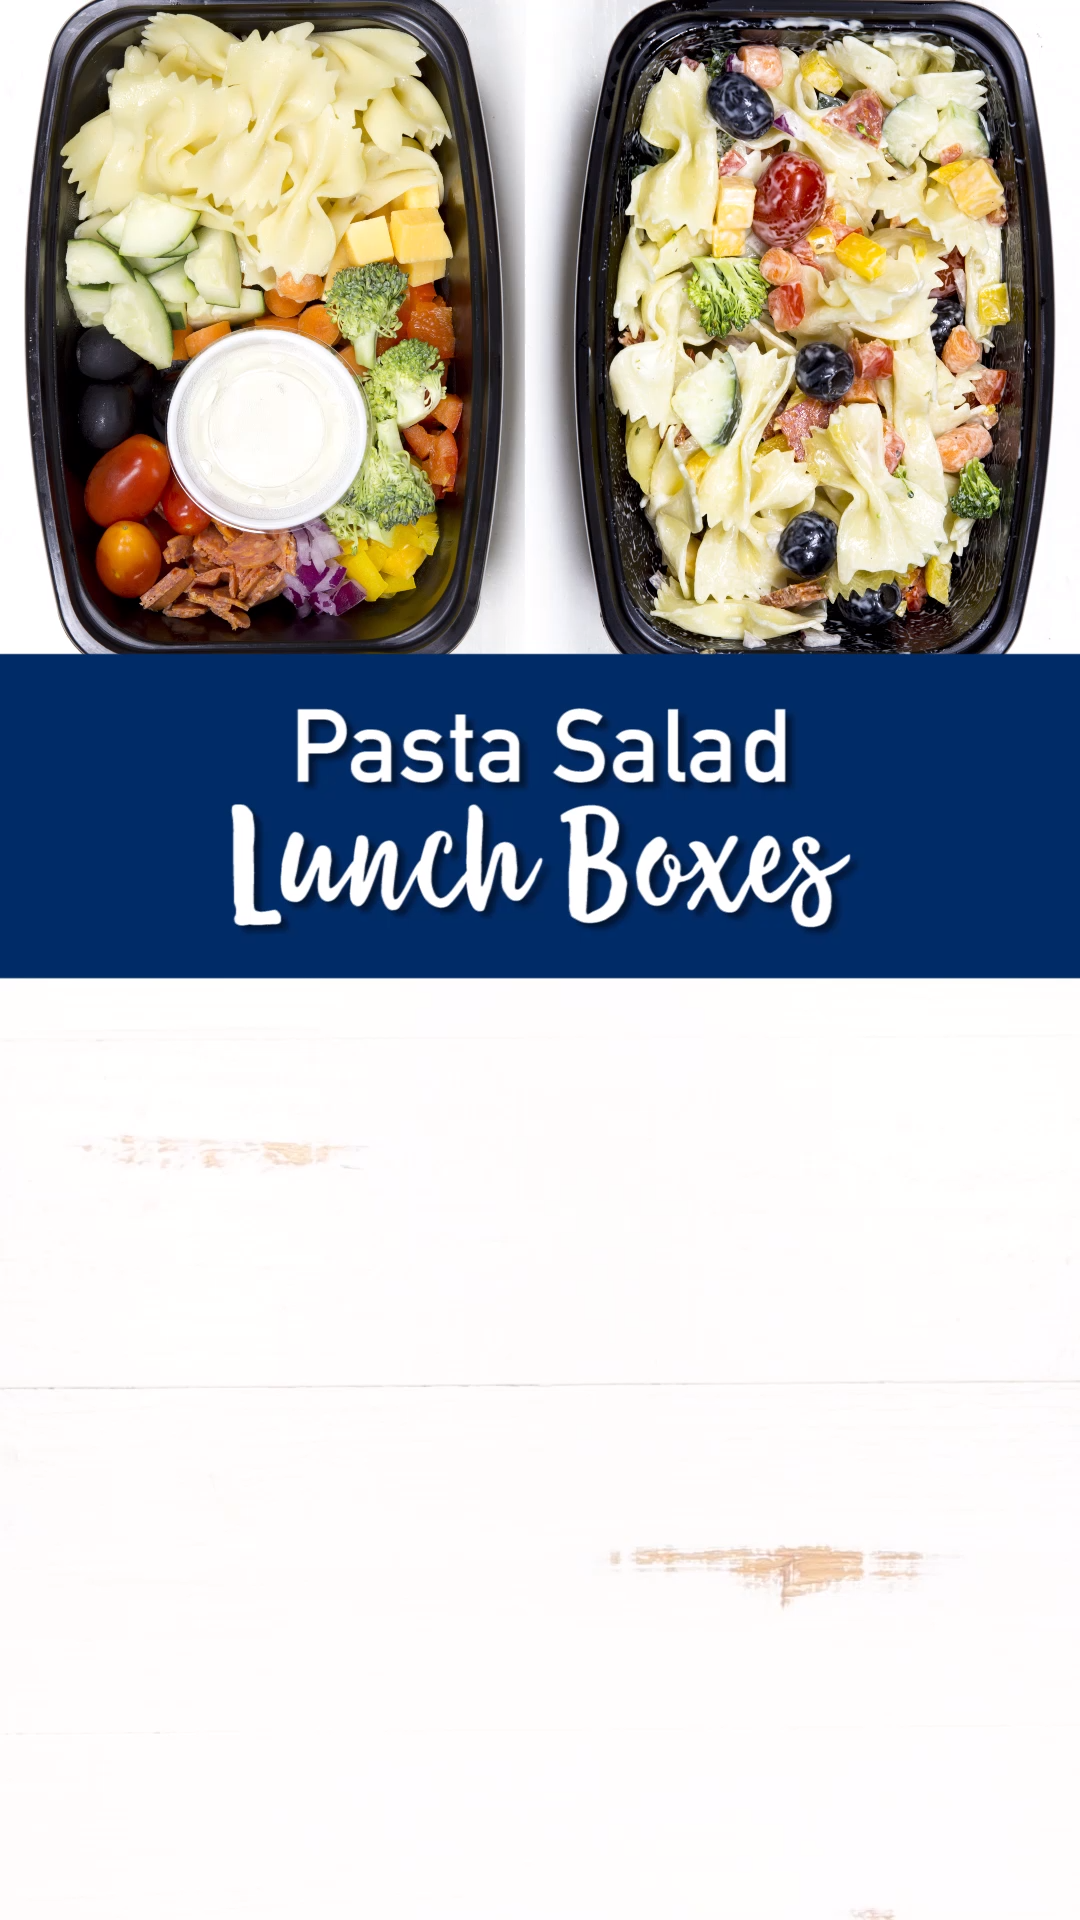 Photo of Pasta Salad Lunch Boxes